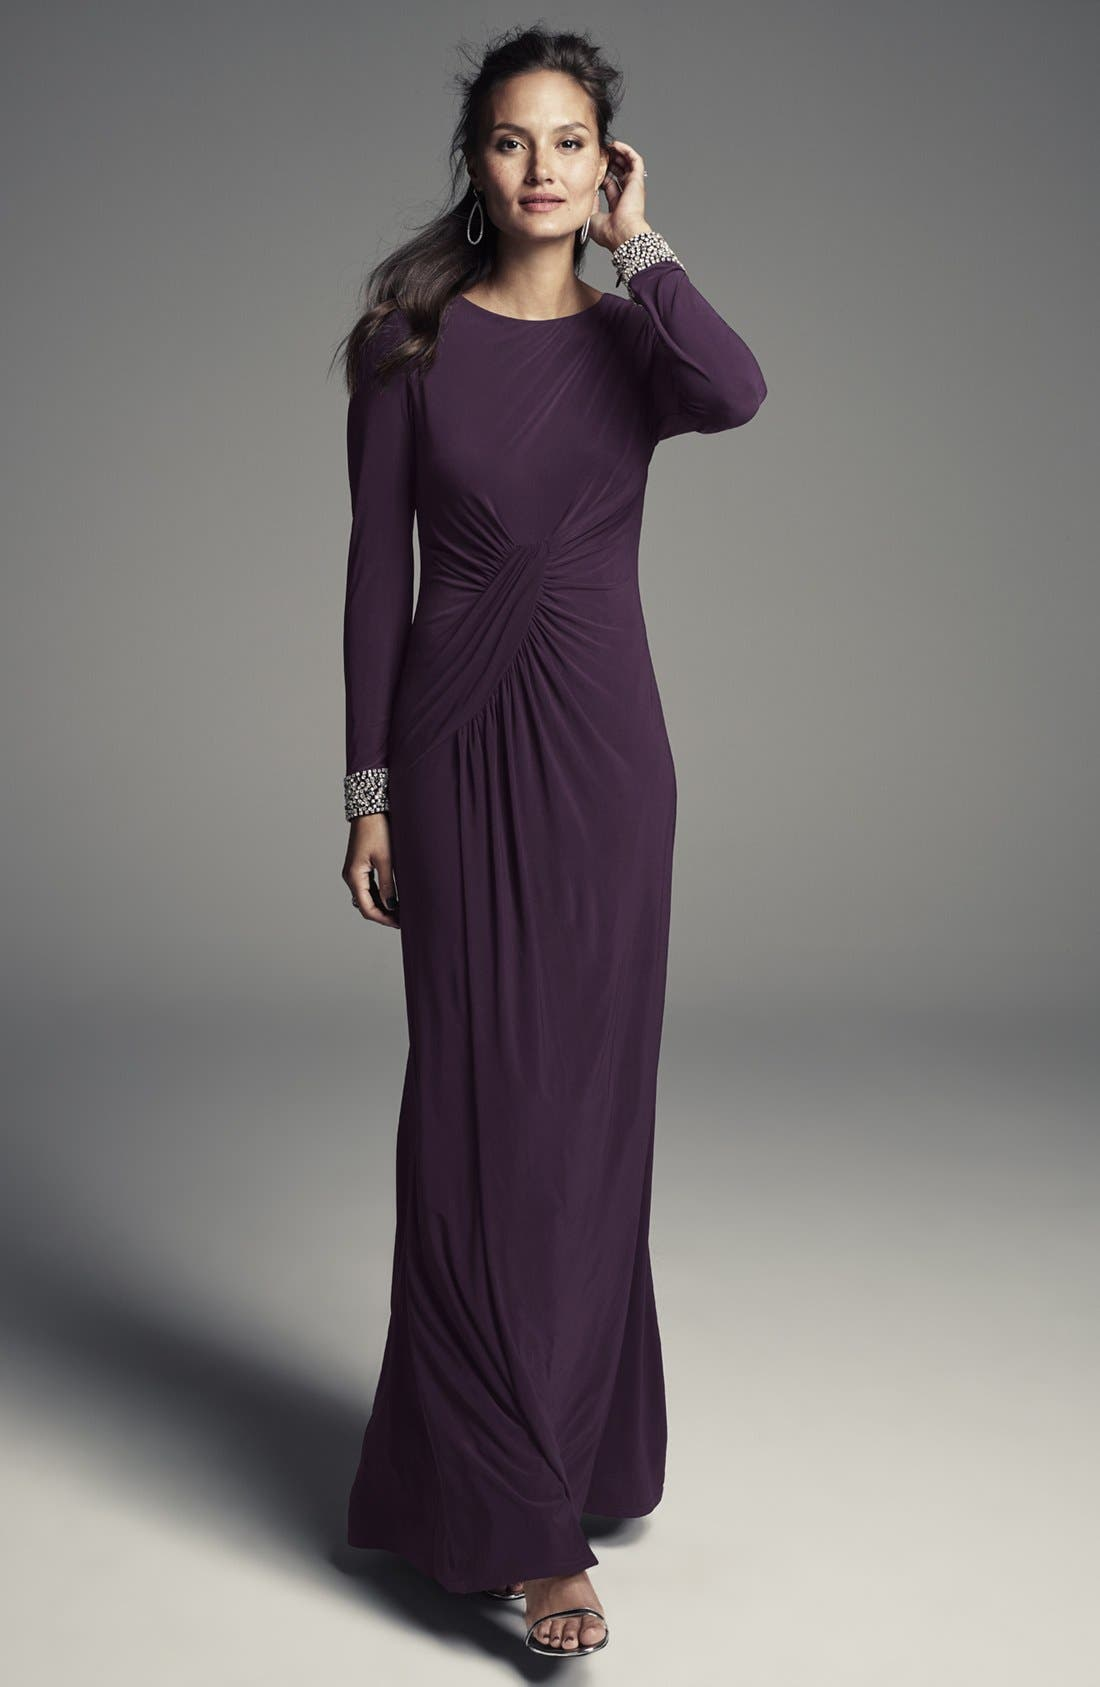 VINCE CAMUTO, Beaded Cuff Ruched Jersey Gown, Alternate thumbnail 9, color, 505